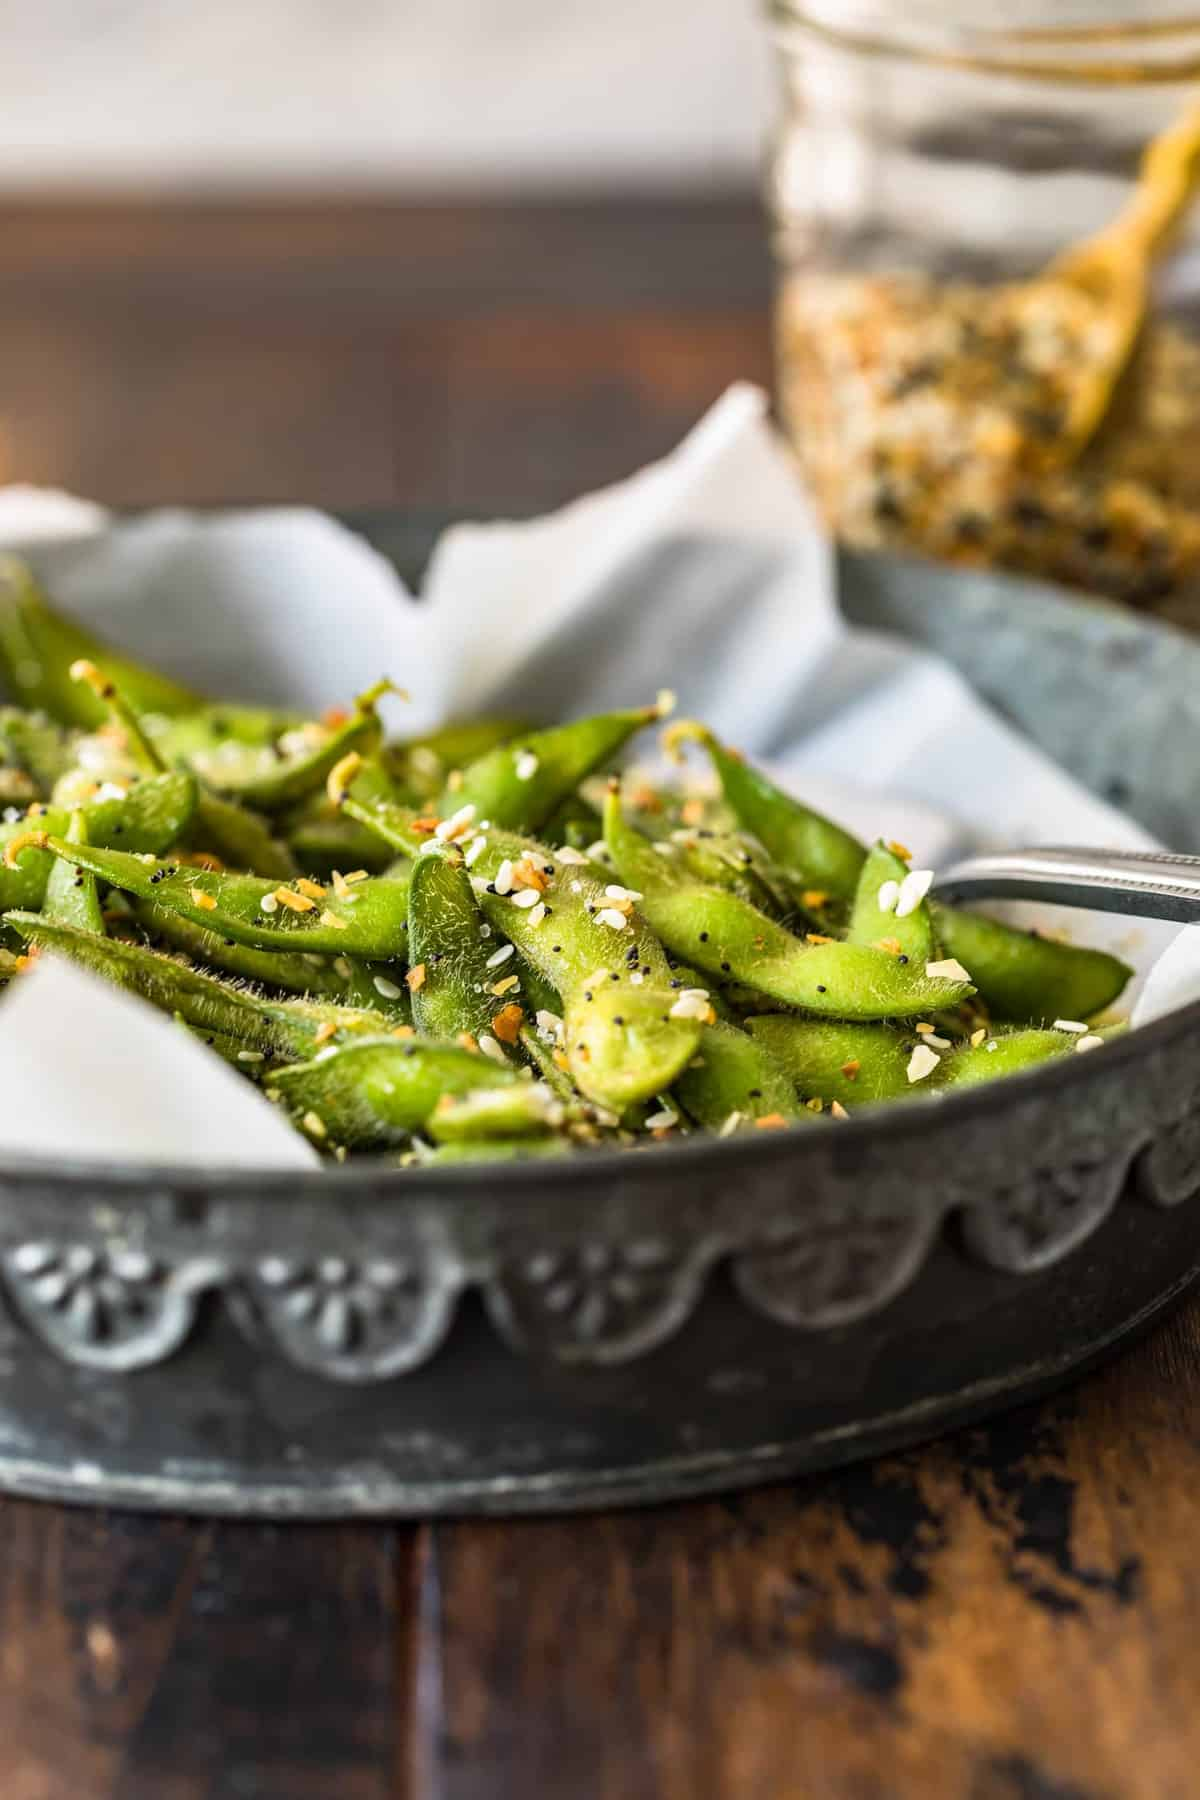 A side view of the edamame sitting in a silver dish with a spoon